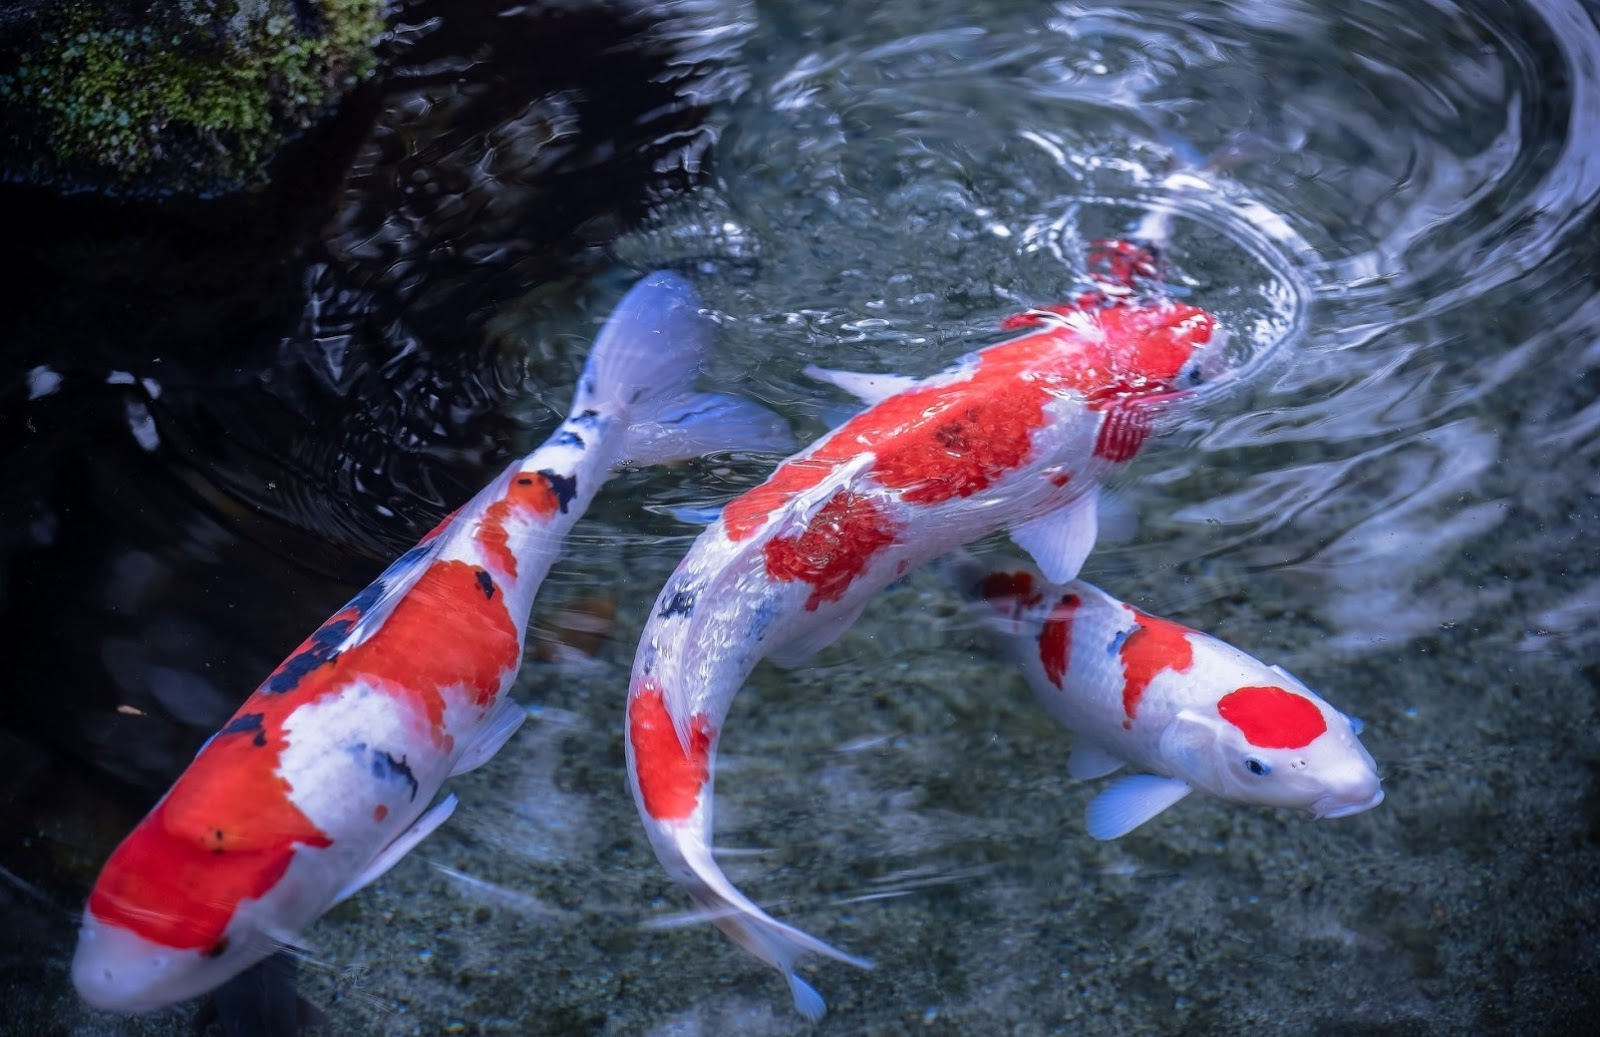 Koi fish fishes world hd images free photos for Koi fish tank